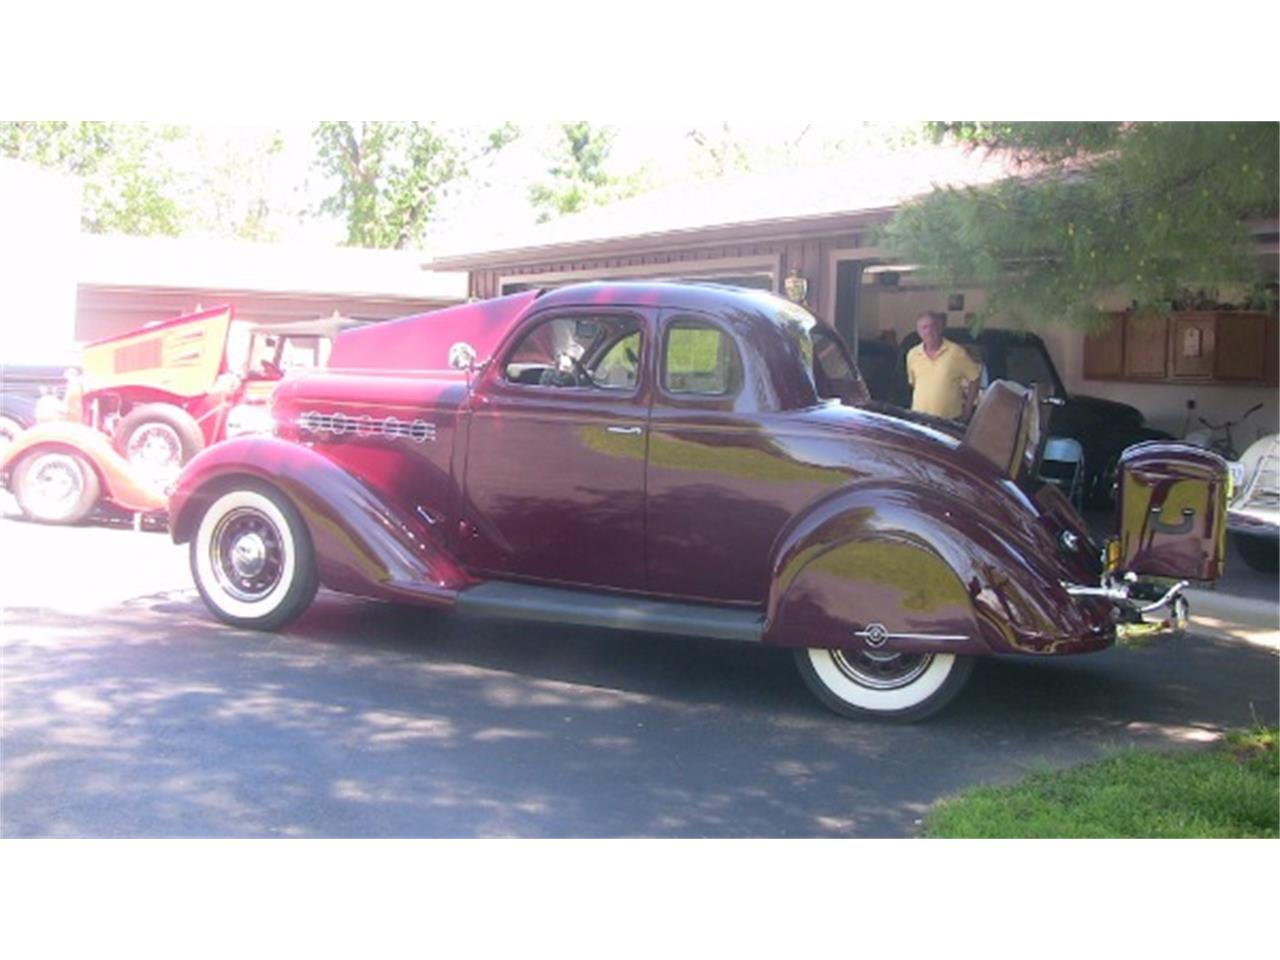 Large Picture of Classic 1935 Plymouth PG Deluxe located in North Carolina Offered by Classic Lady Motors - L2RW